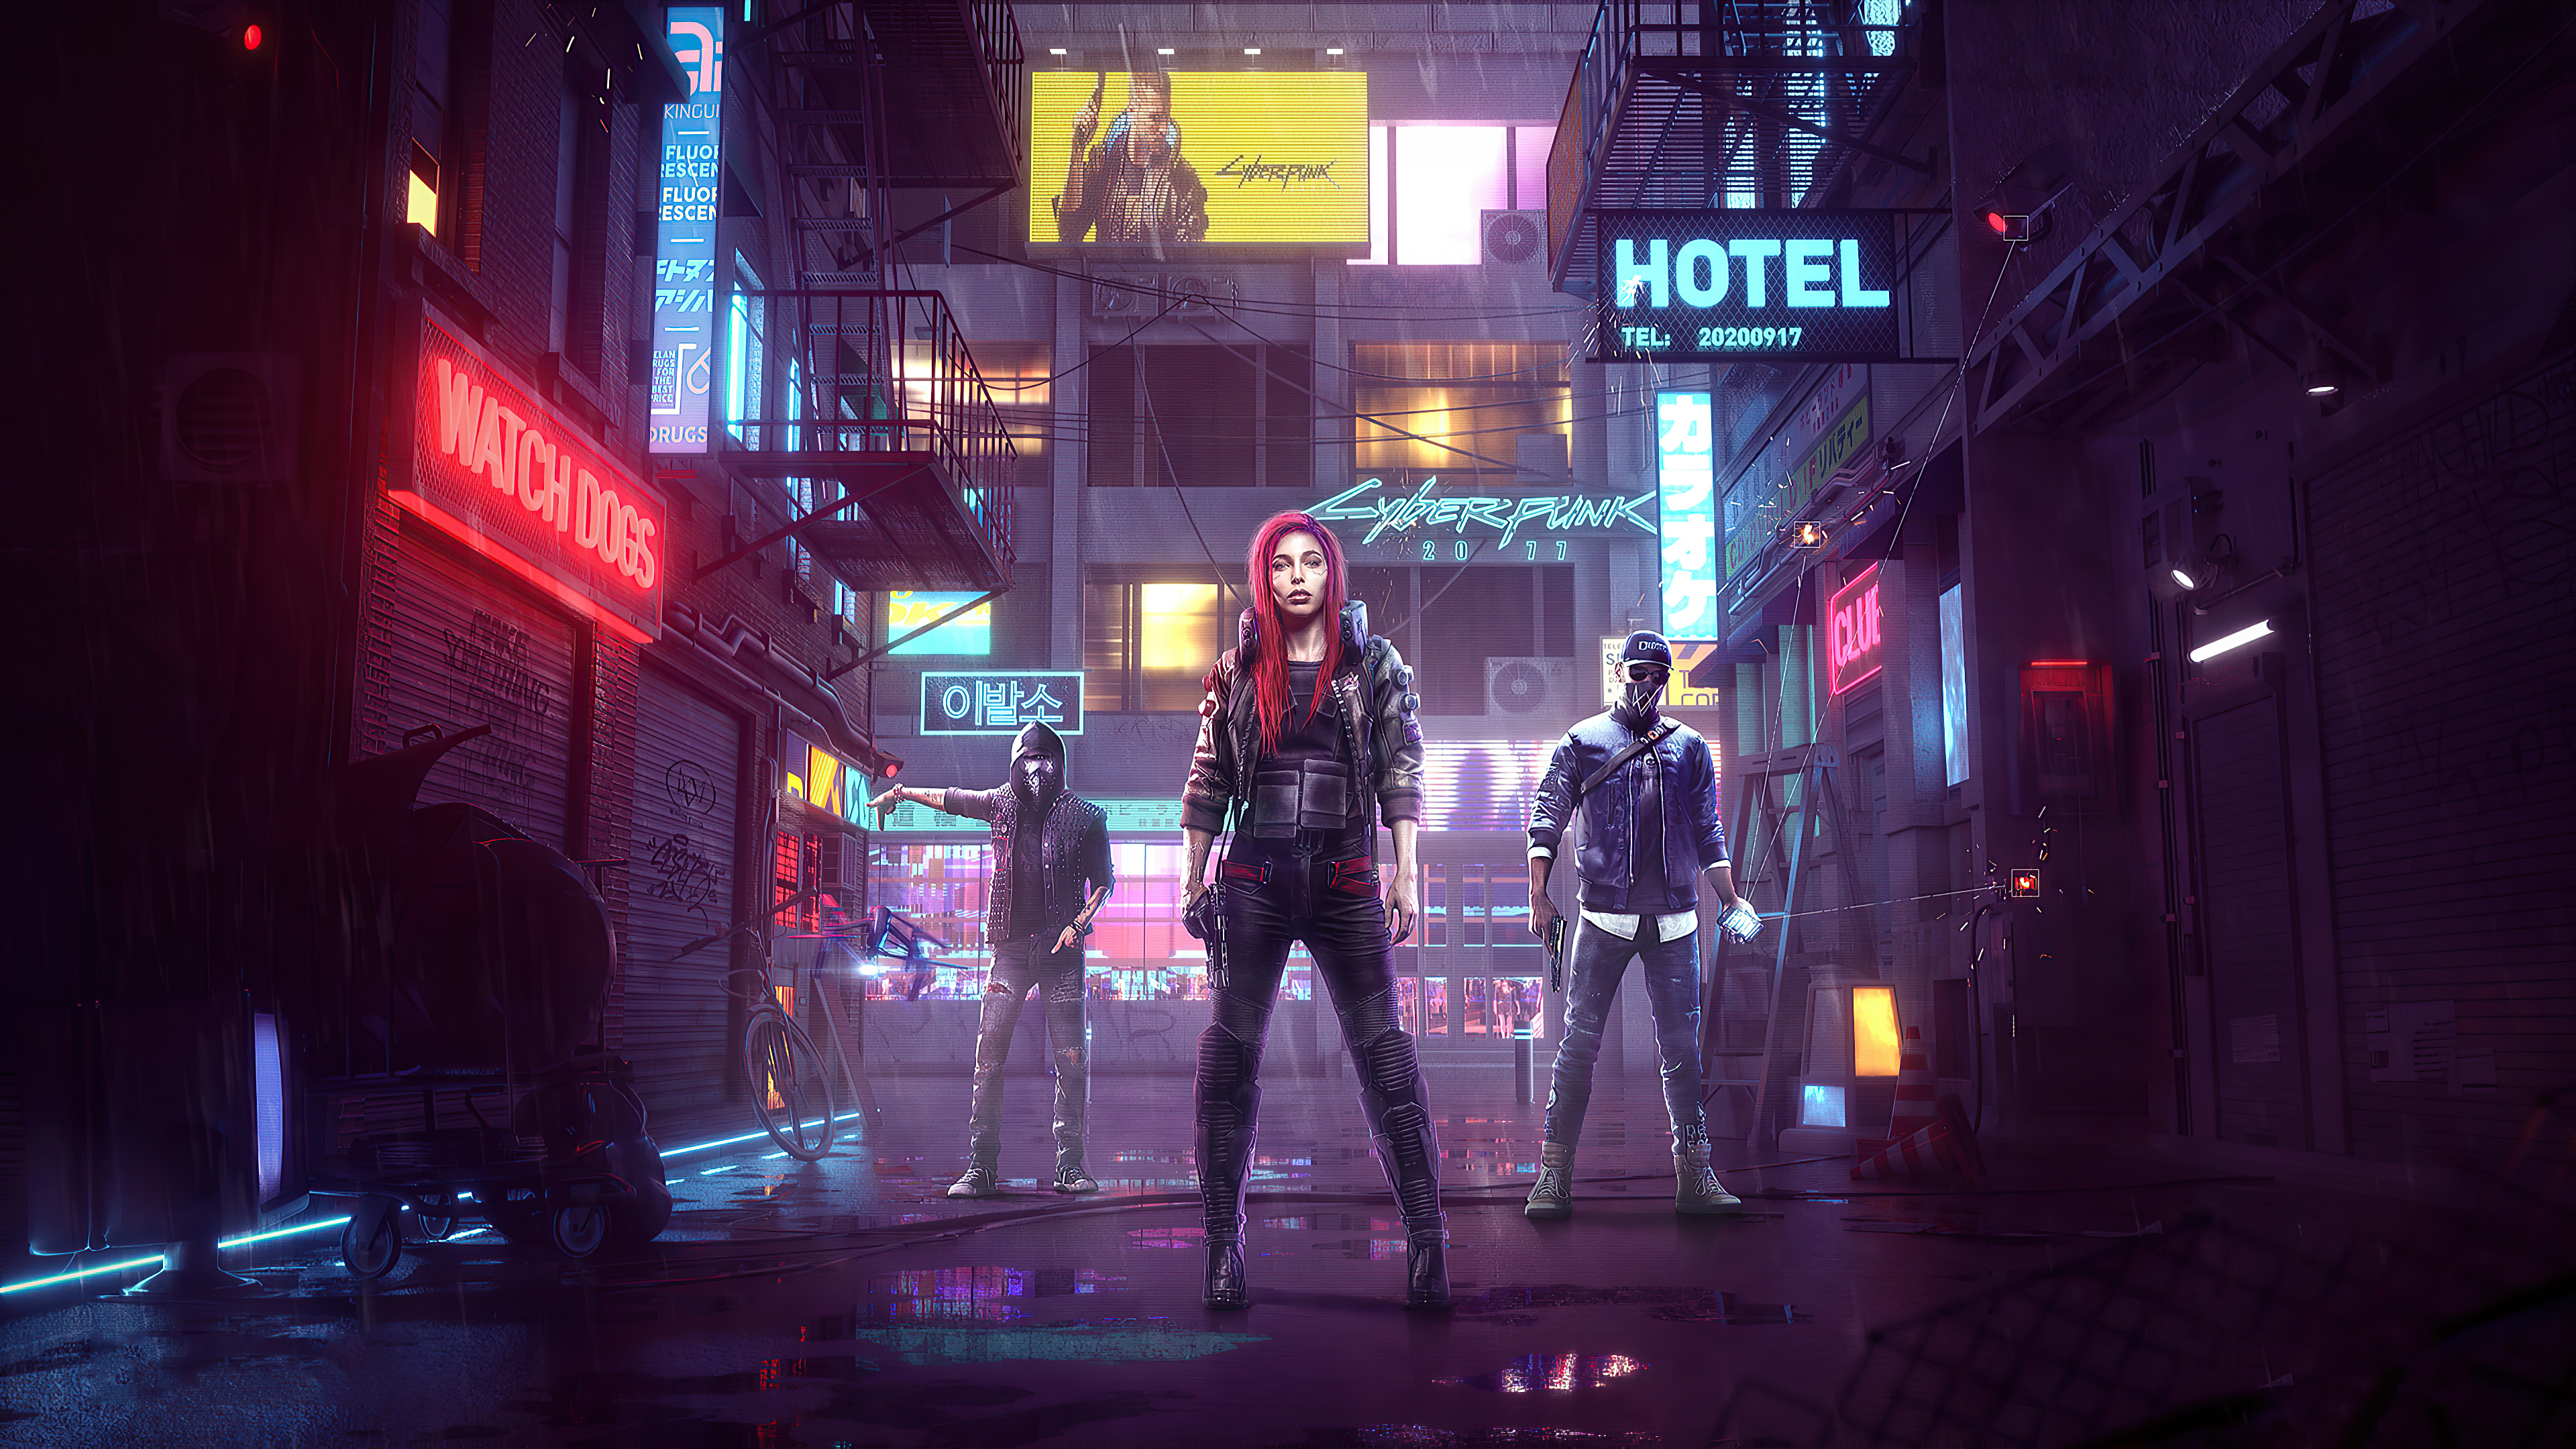 cyberpunk 2077 2020 1596989832 - Cyberpunk 2077 2020 - Cyberpunk 2077 4k wallpapers, Cyberpunk 2077 2020 game wallpapers